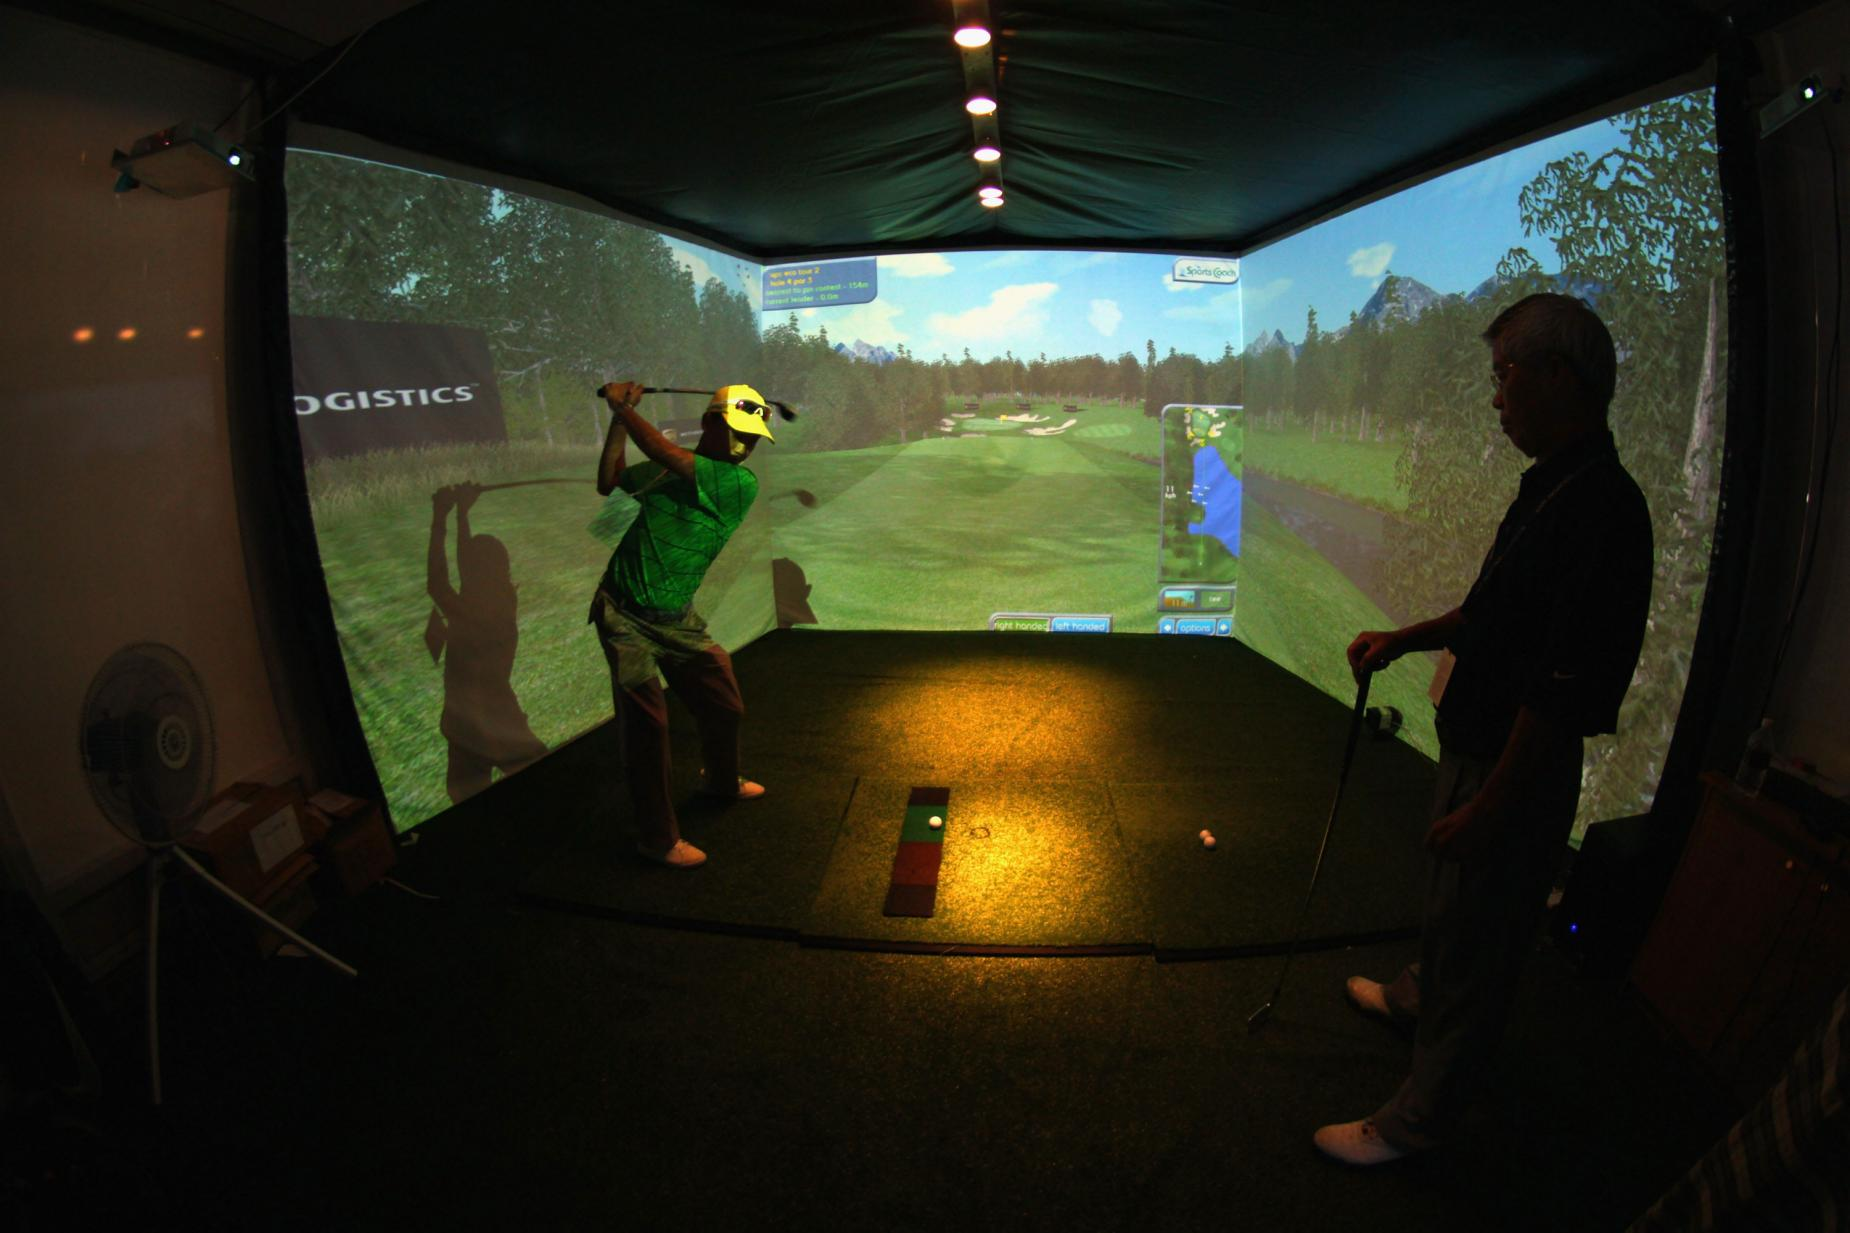 golf-simulator-getty.jpg